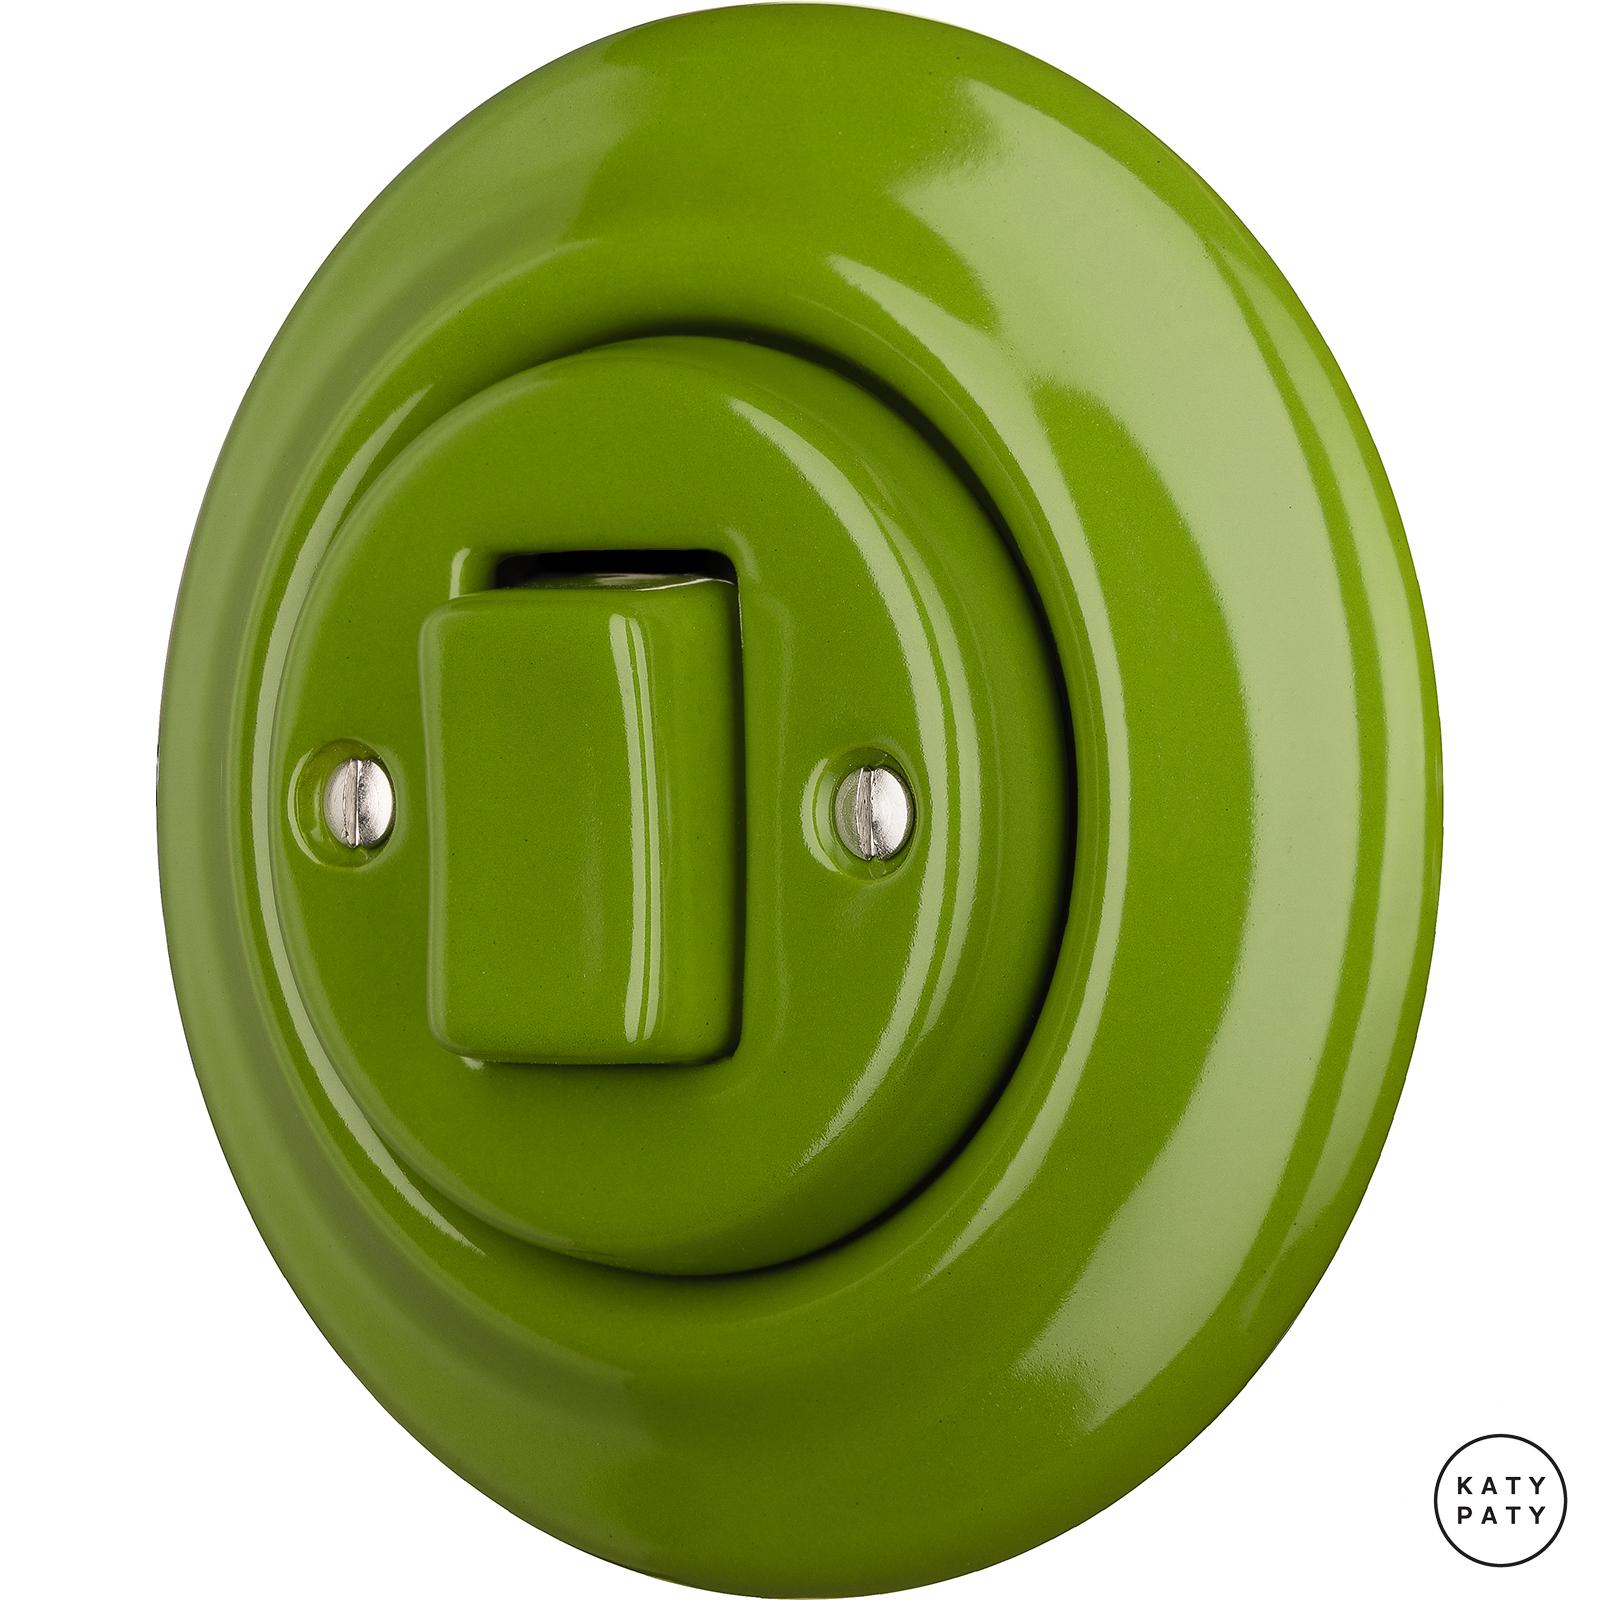 Porcelain switches - 1 key - FAT ()  - NITOR CHLORA | Katy Paty